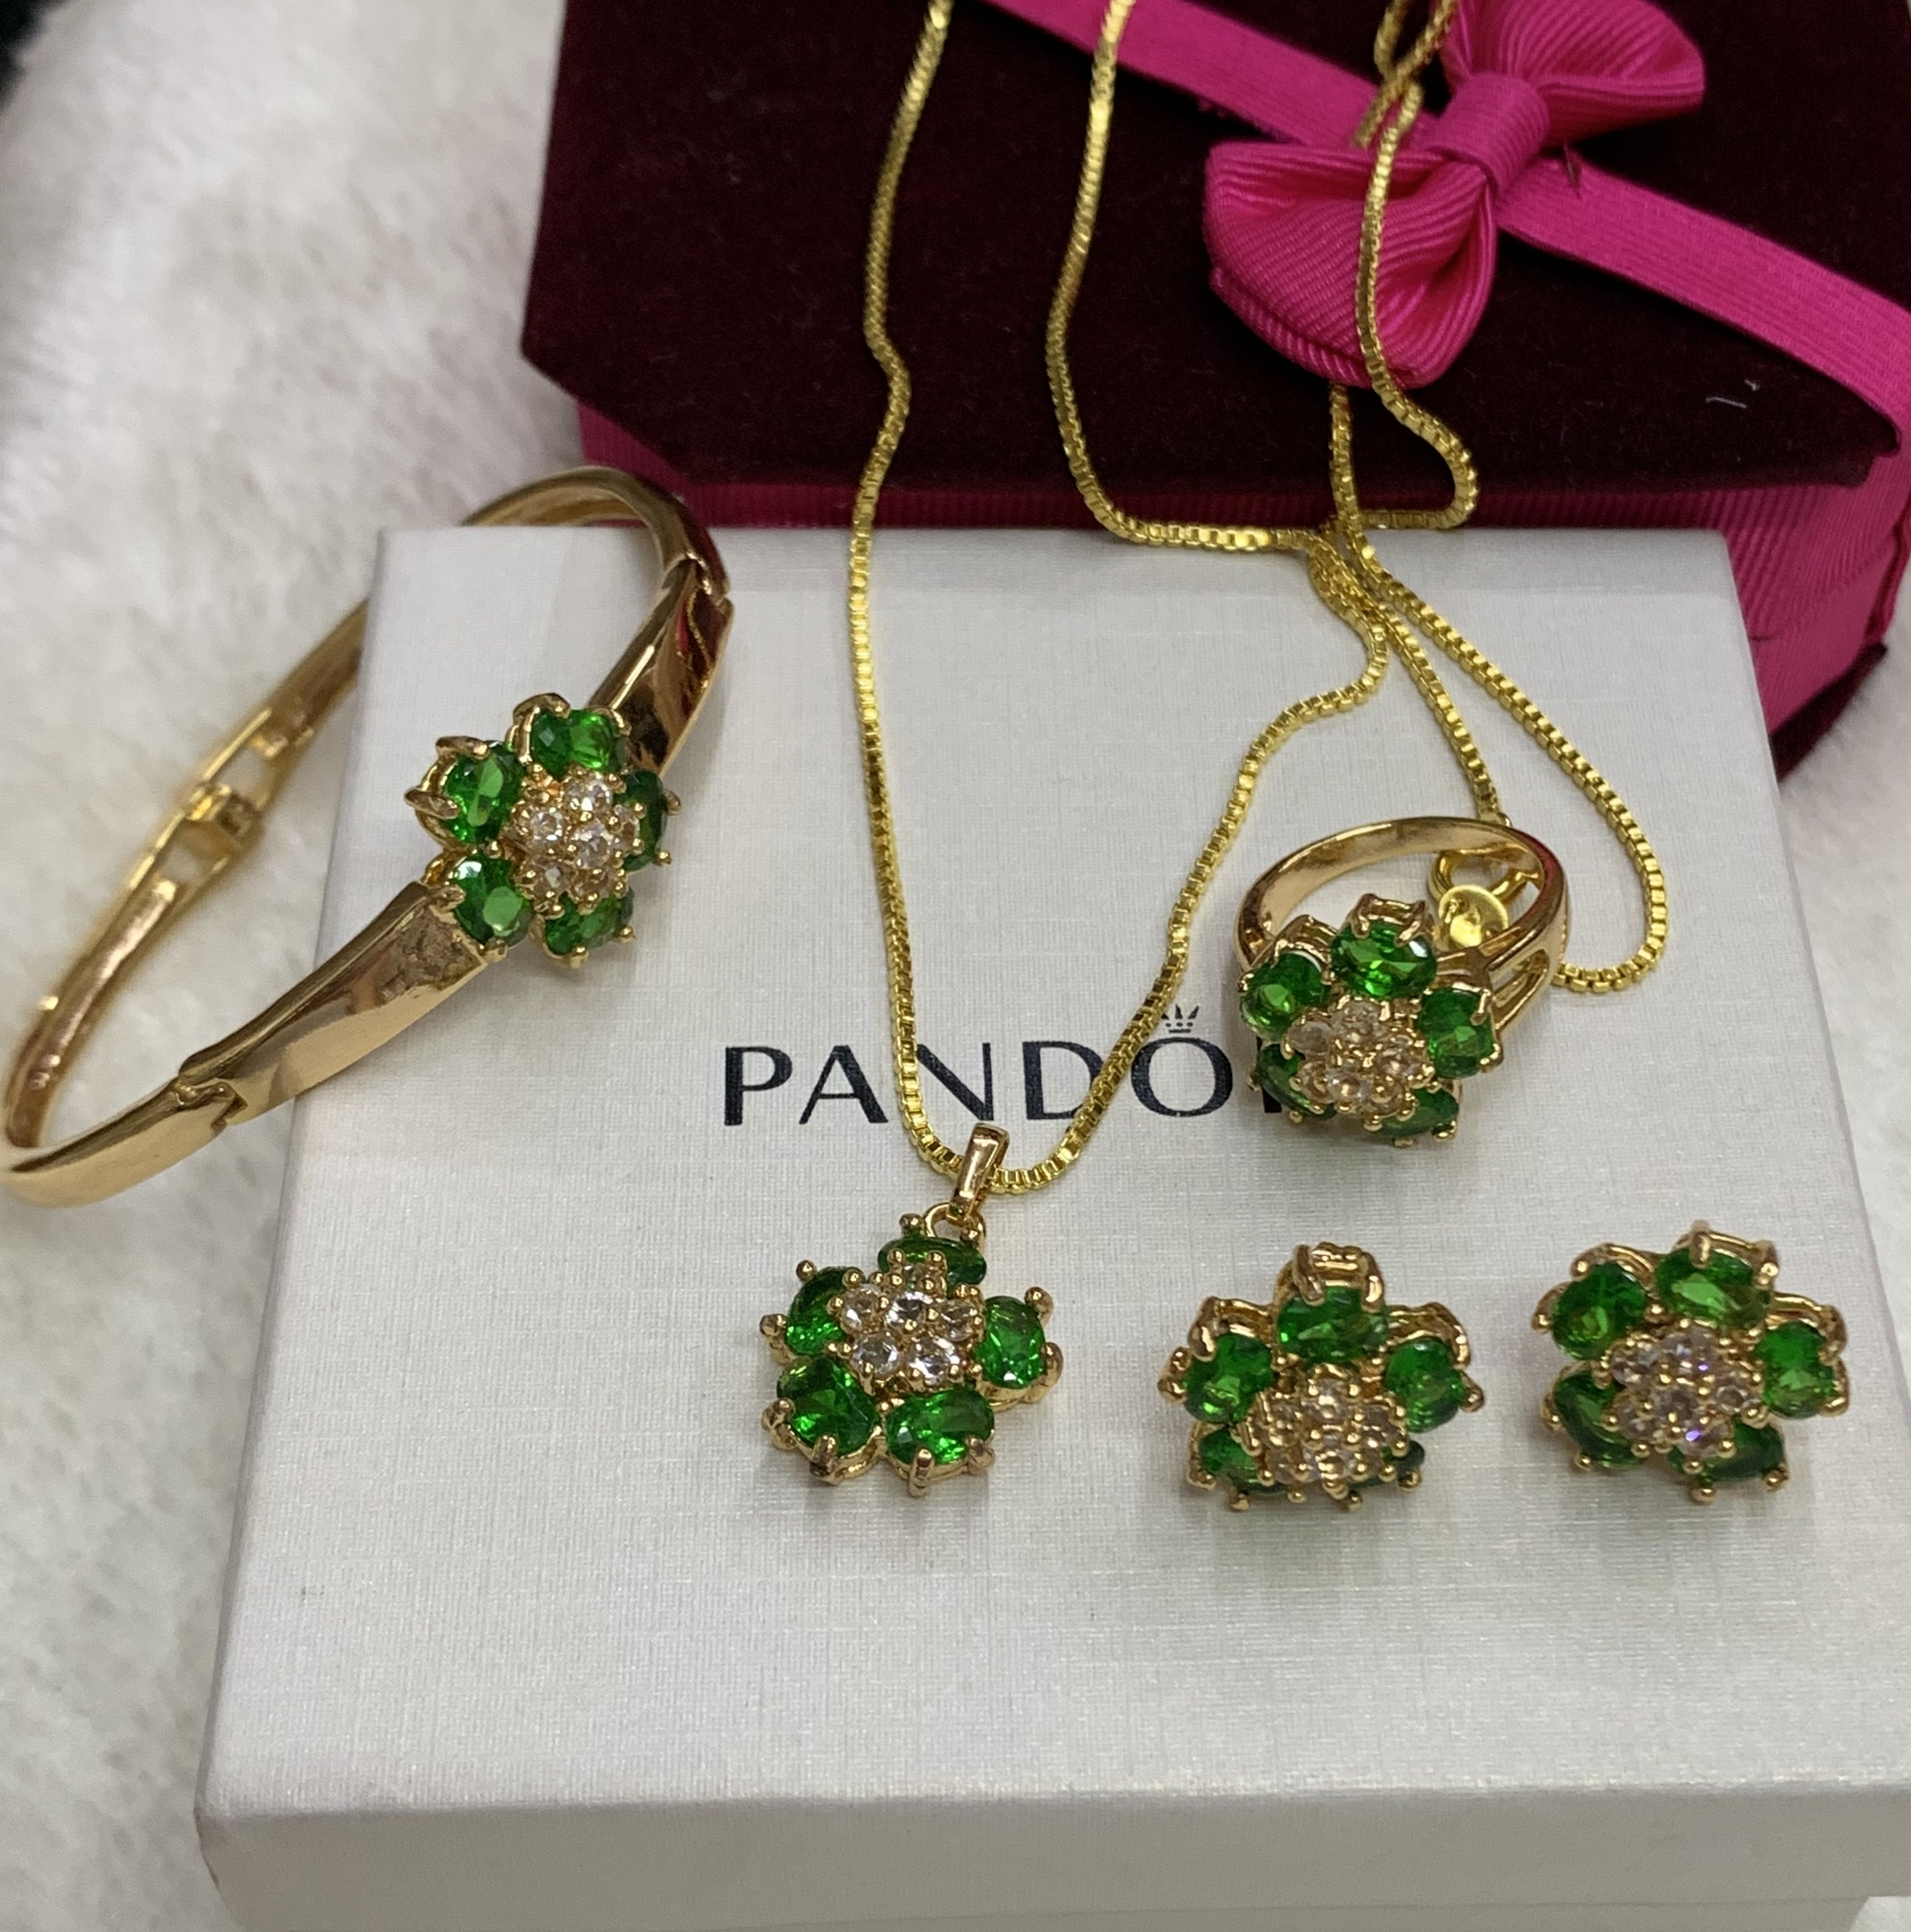 253493c253 Specifications of Bangkok 18K Goldmix Jewellery sets w/ emerald and  Swarovski Stones. Brand. SAVE AND SHOP